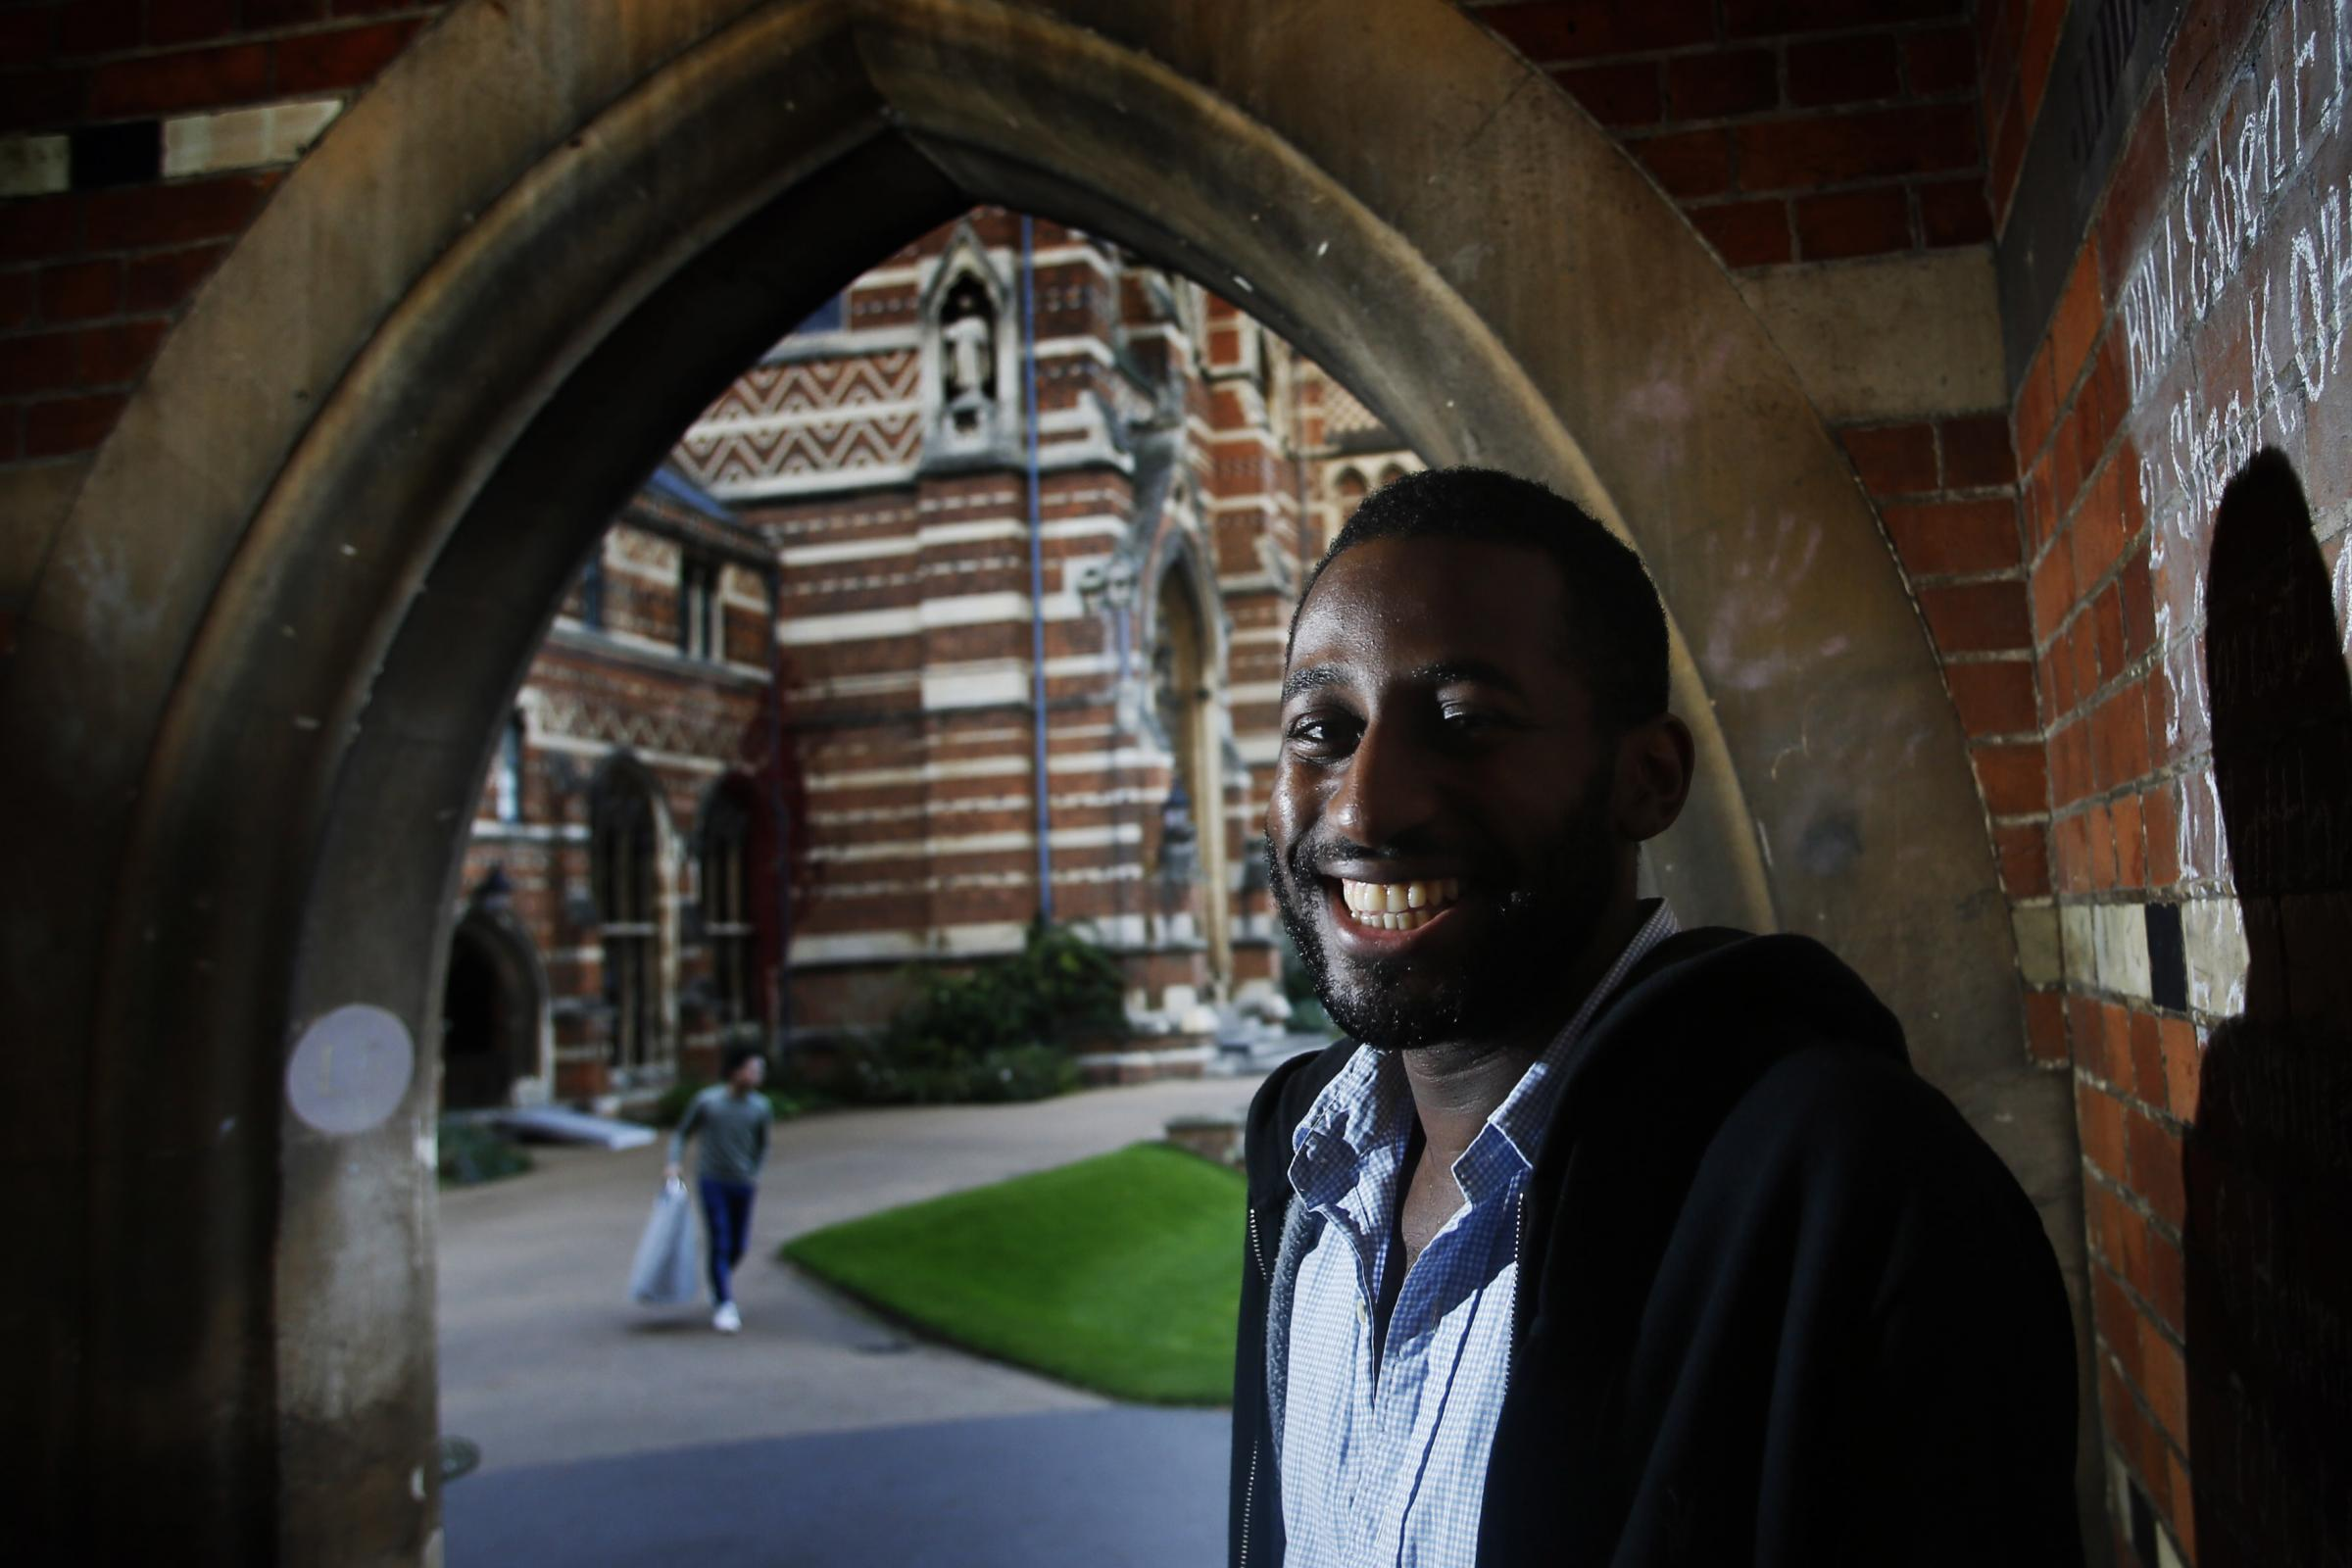 Roy Celaire, who crowdfunded his place at Oxford University, pictured at his new home – Keble College on Parks Road. Picture: Ed Nix